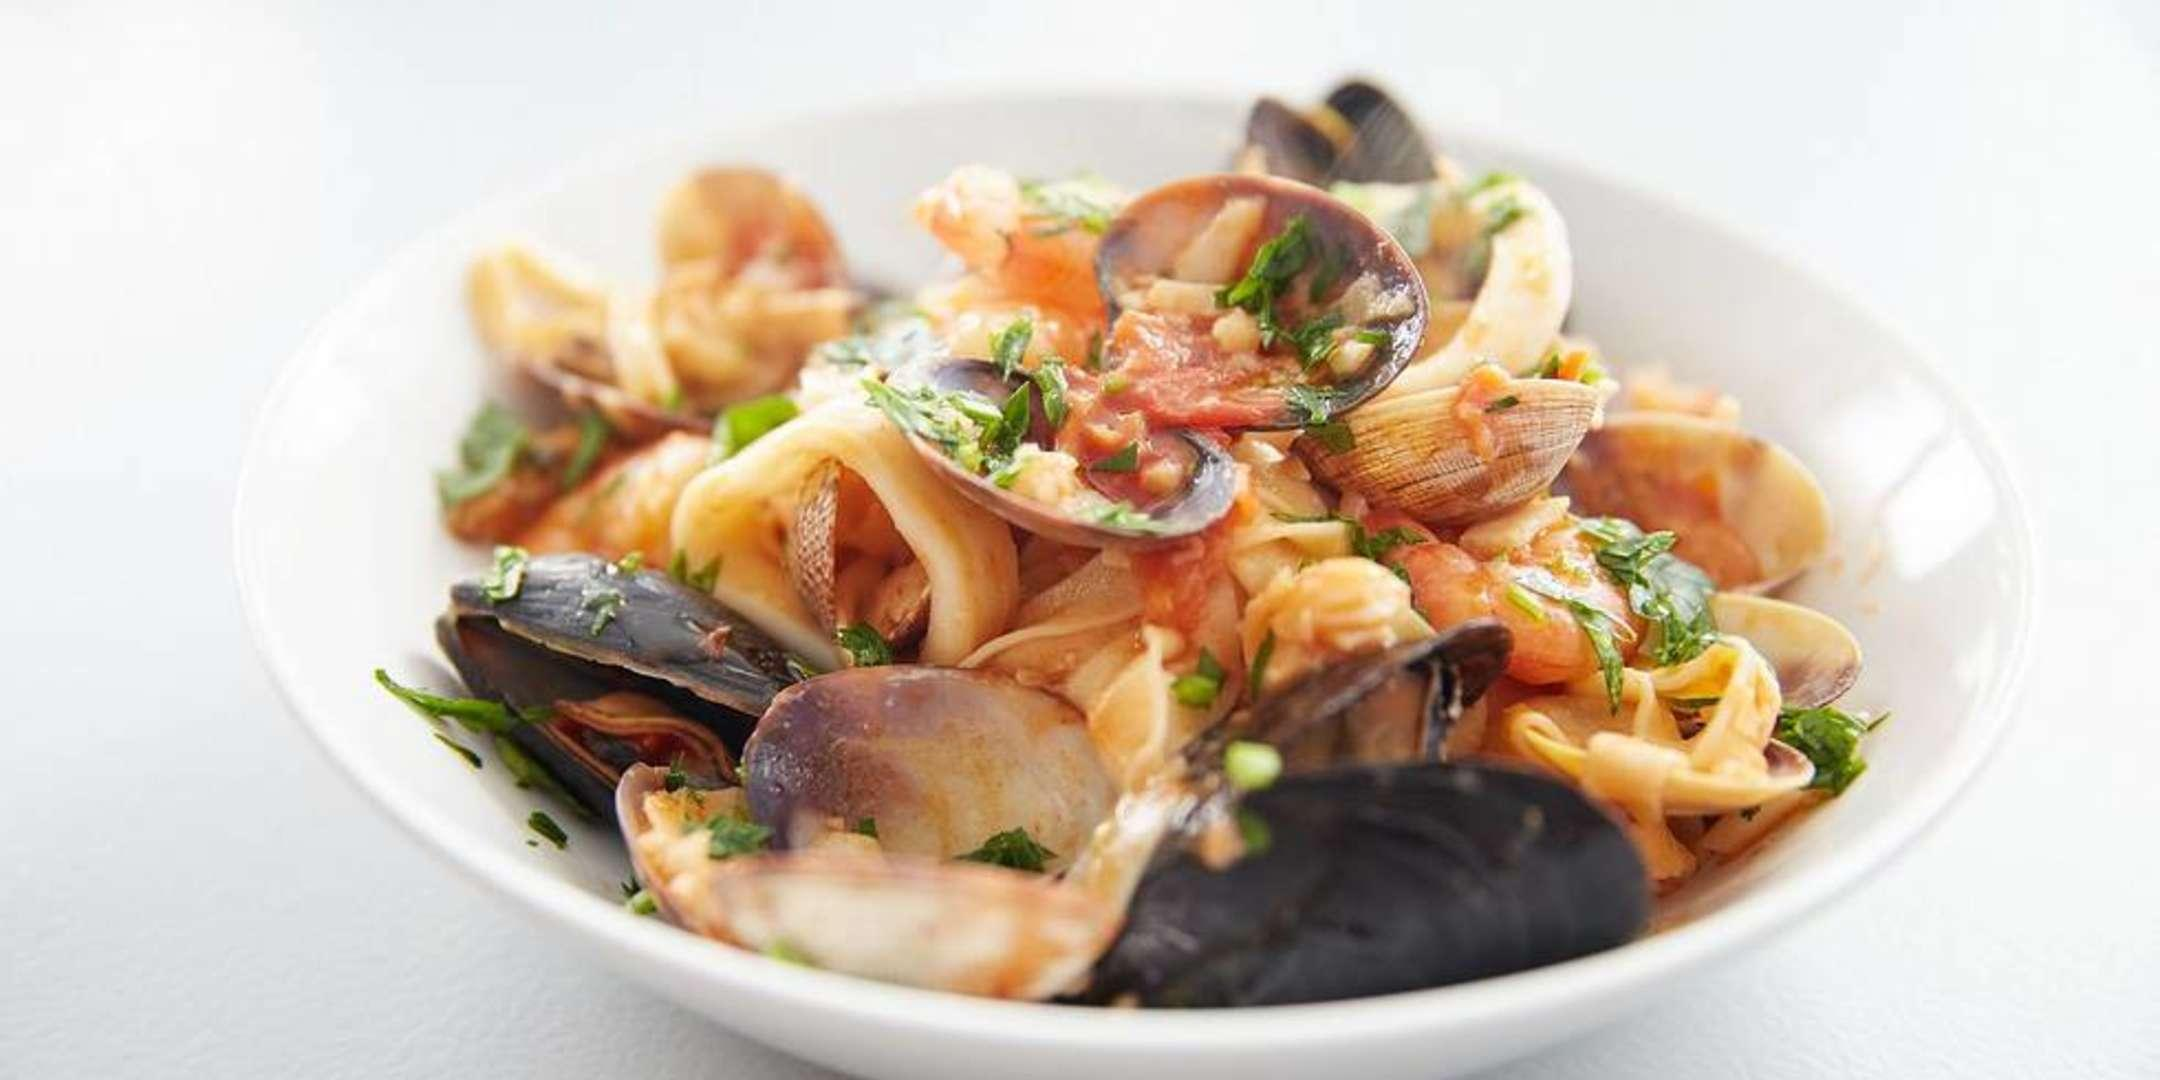 Authentic Mediterranean Seafood - Cooking Class by Cozymeal™